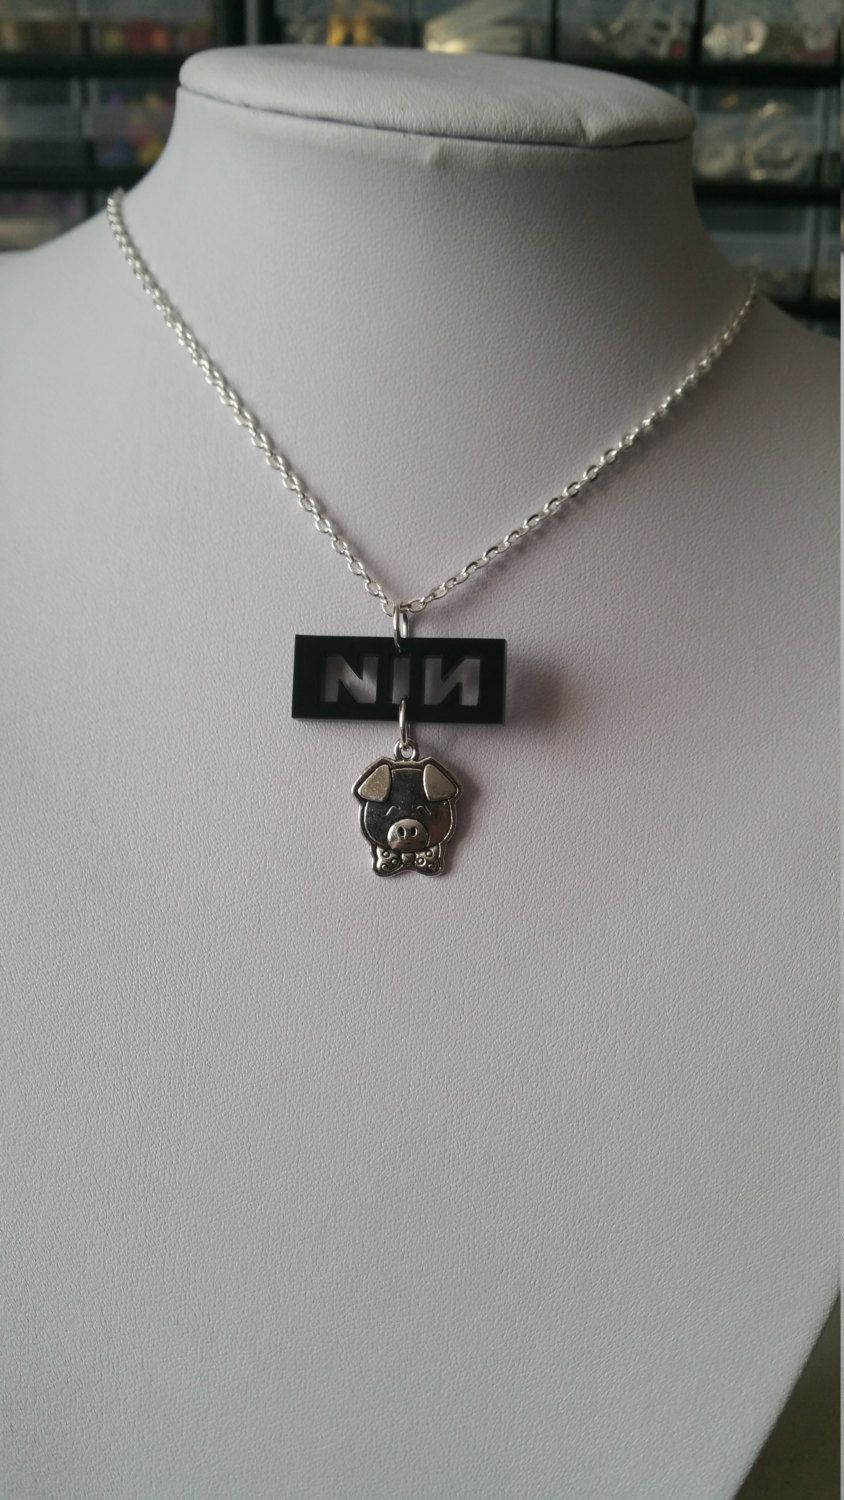 Limited Edition Small Black Laser Cut NIN Nine Inch Nails Necklace ...